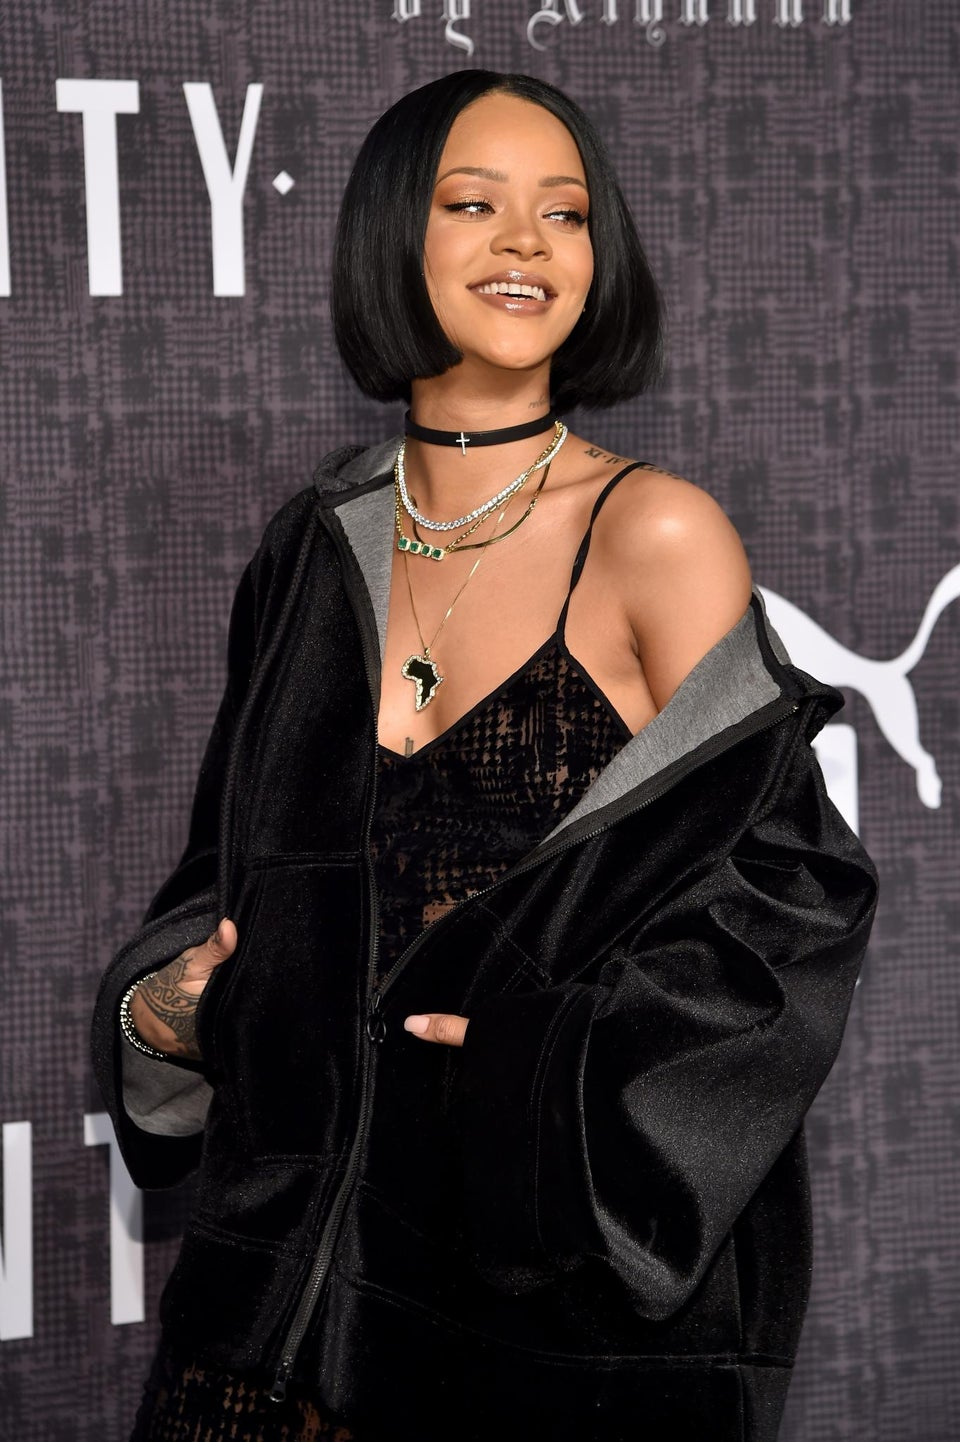 Rihanna Cancels Grammy Performance at Doctor's Suggestion